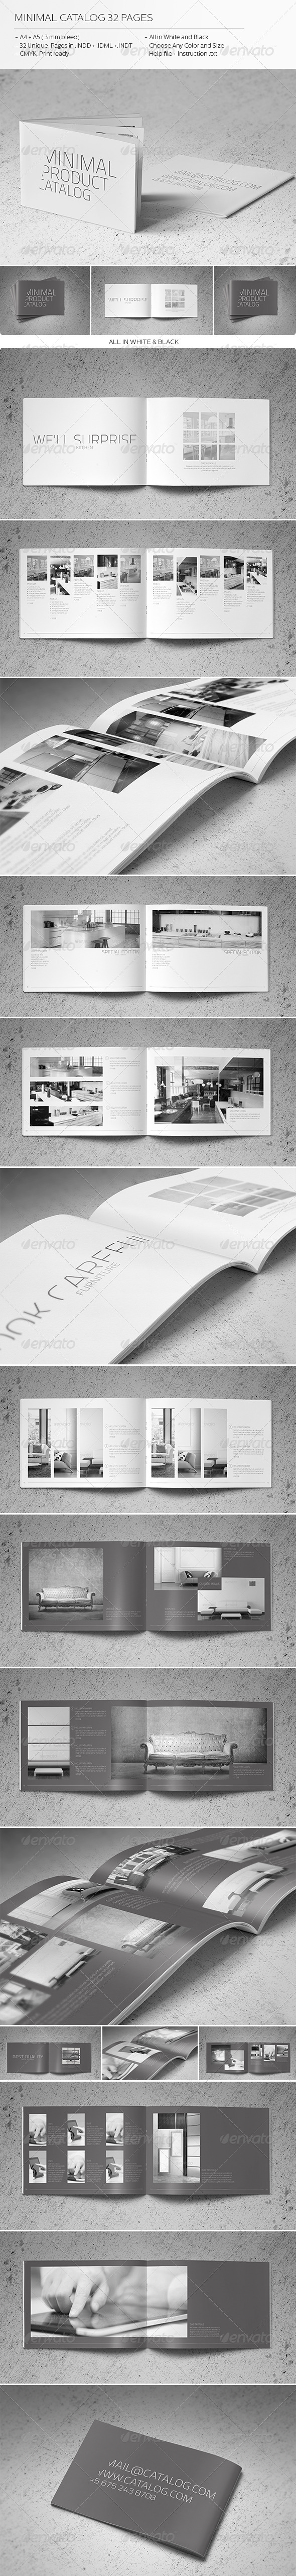 GraphicRiver Minimal Catalog 32 Pages 5790591